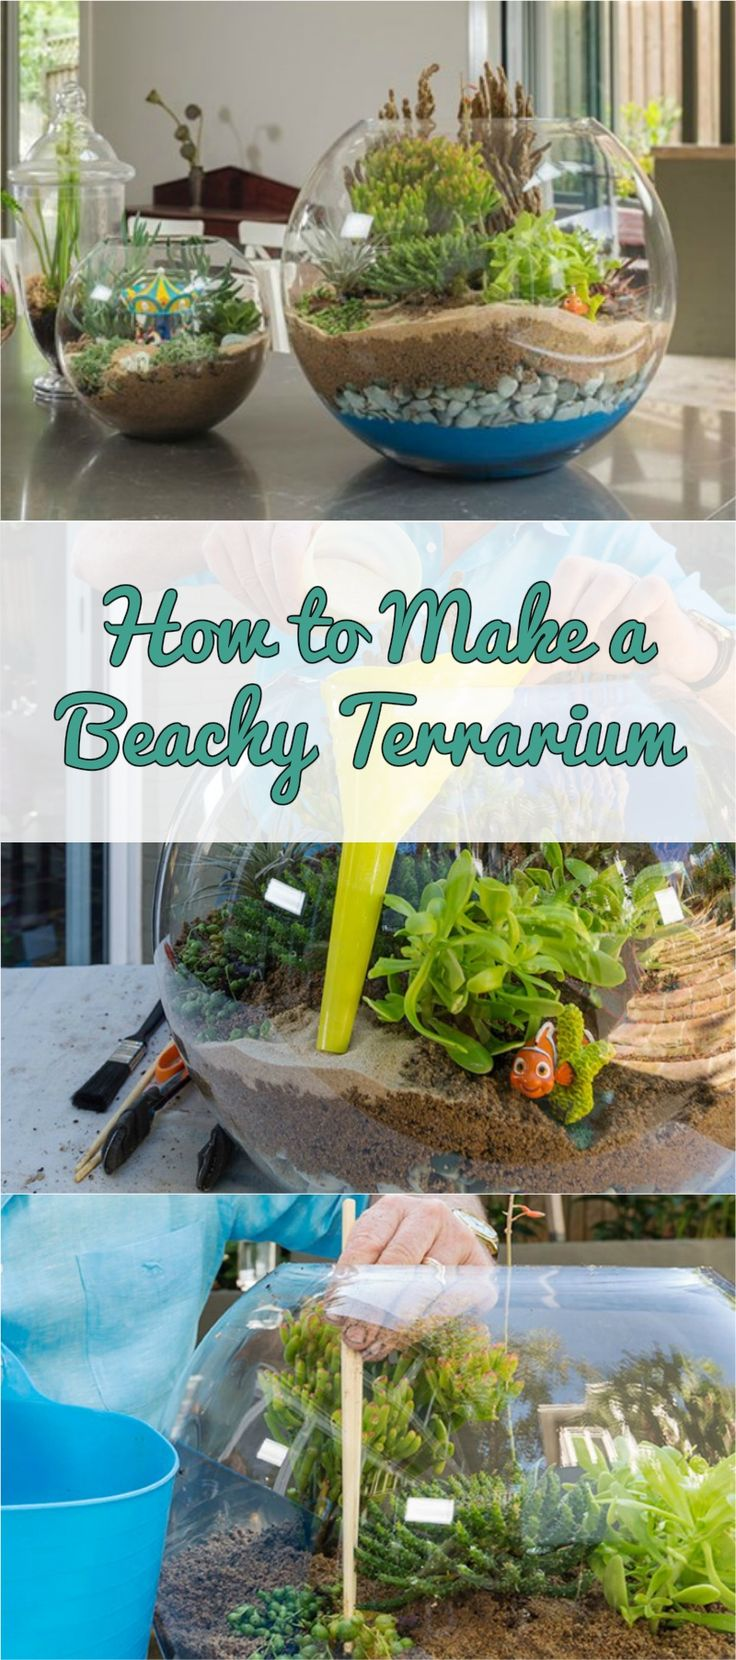 How to Make a Beachy Terrarium #diy